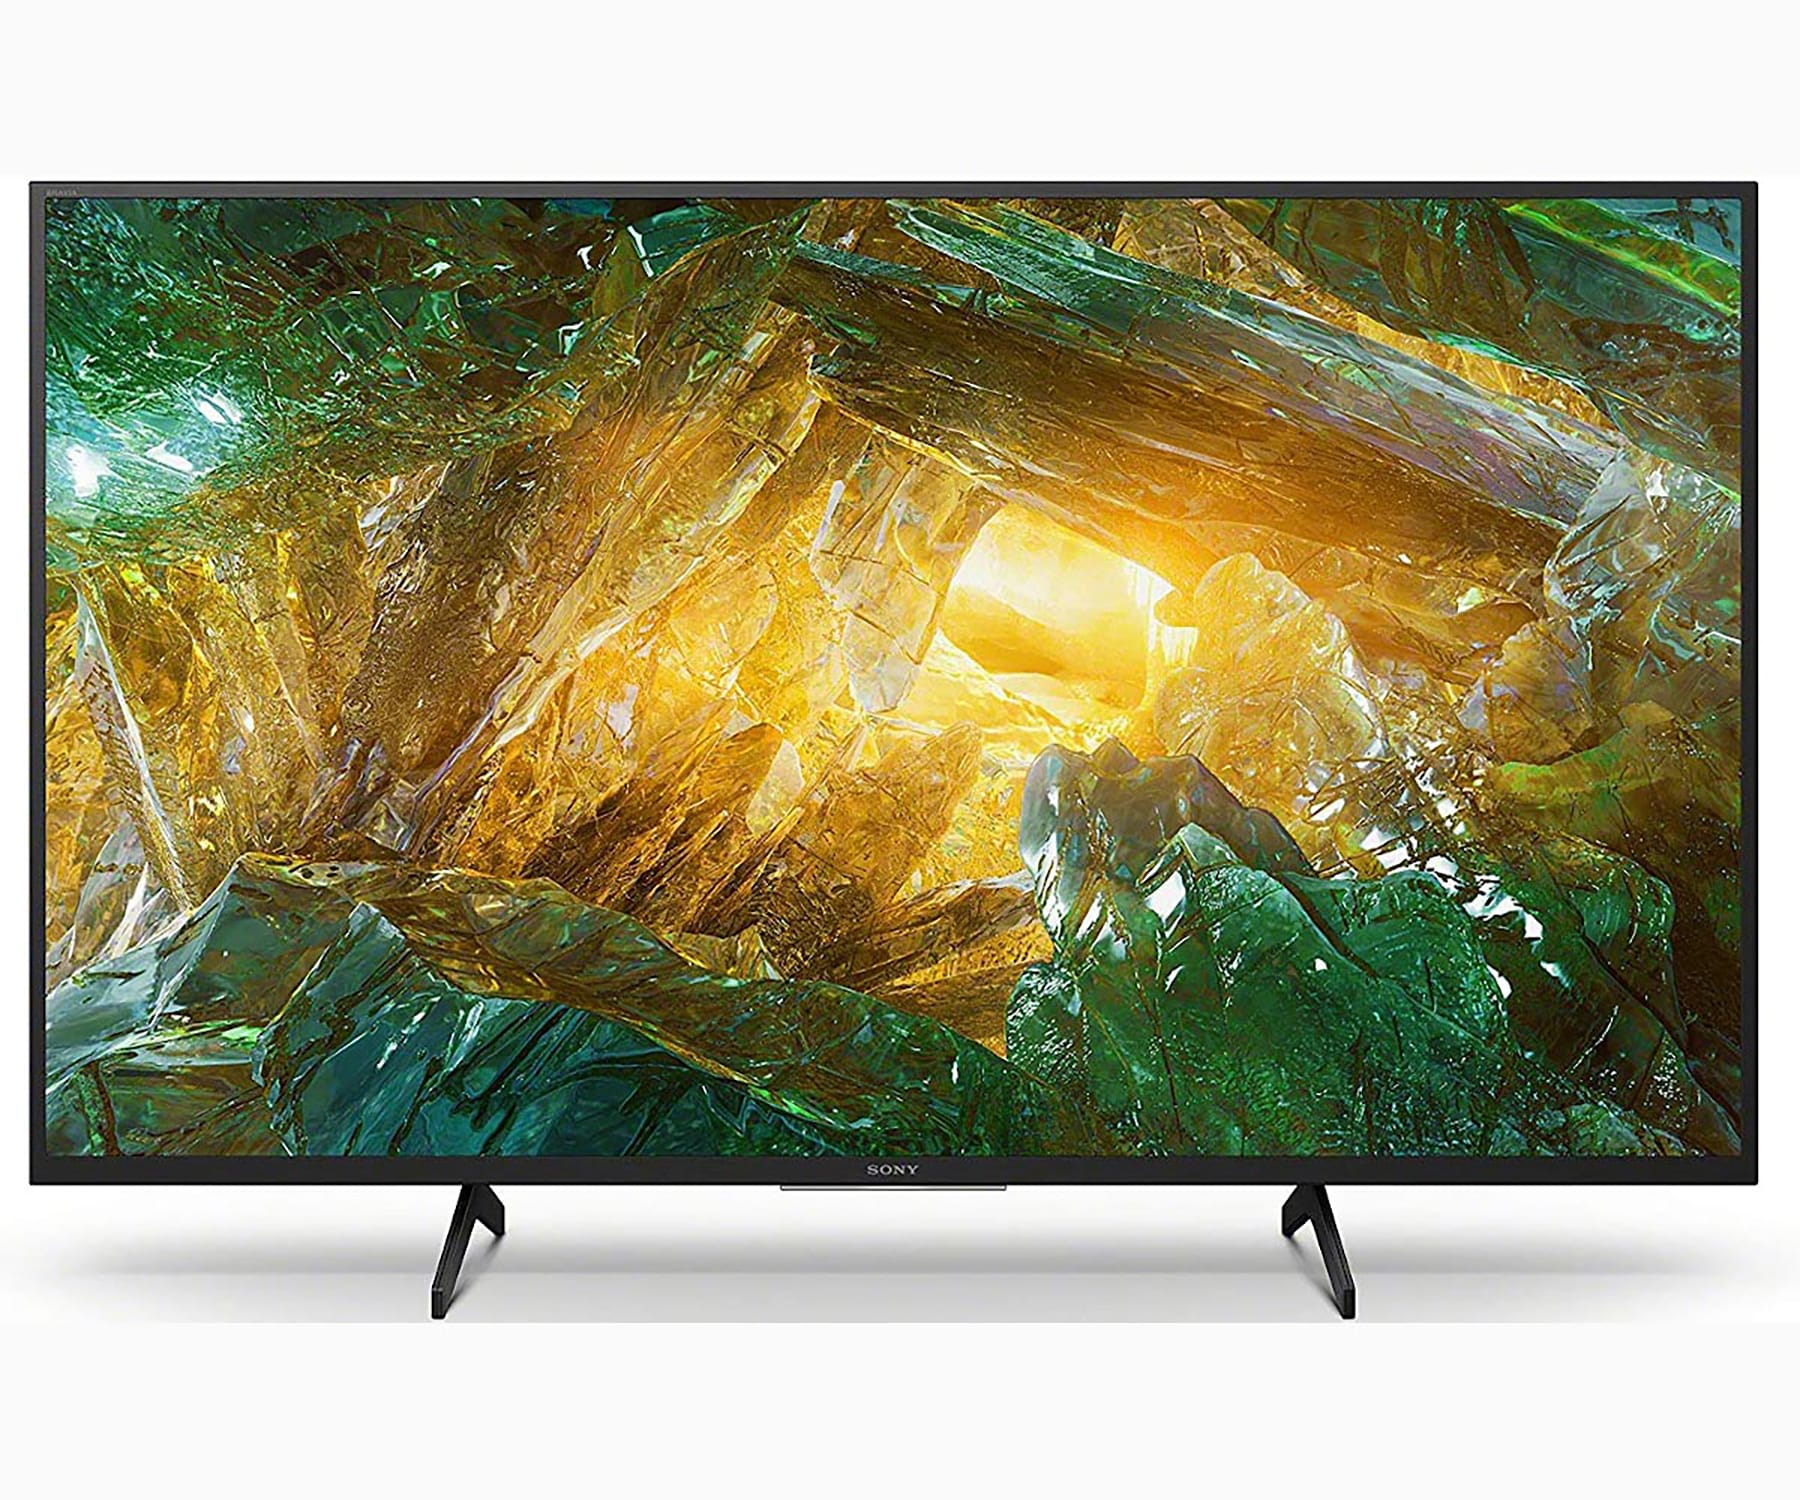 SONY KD65XH8096 TELEVISOR 65'' LCD DIRECT LED UHD 4K HDR 400Hz ANDROID TV Z REAC